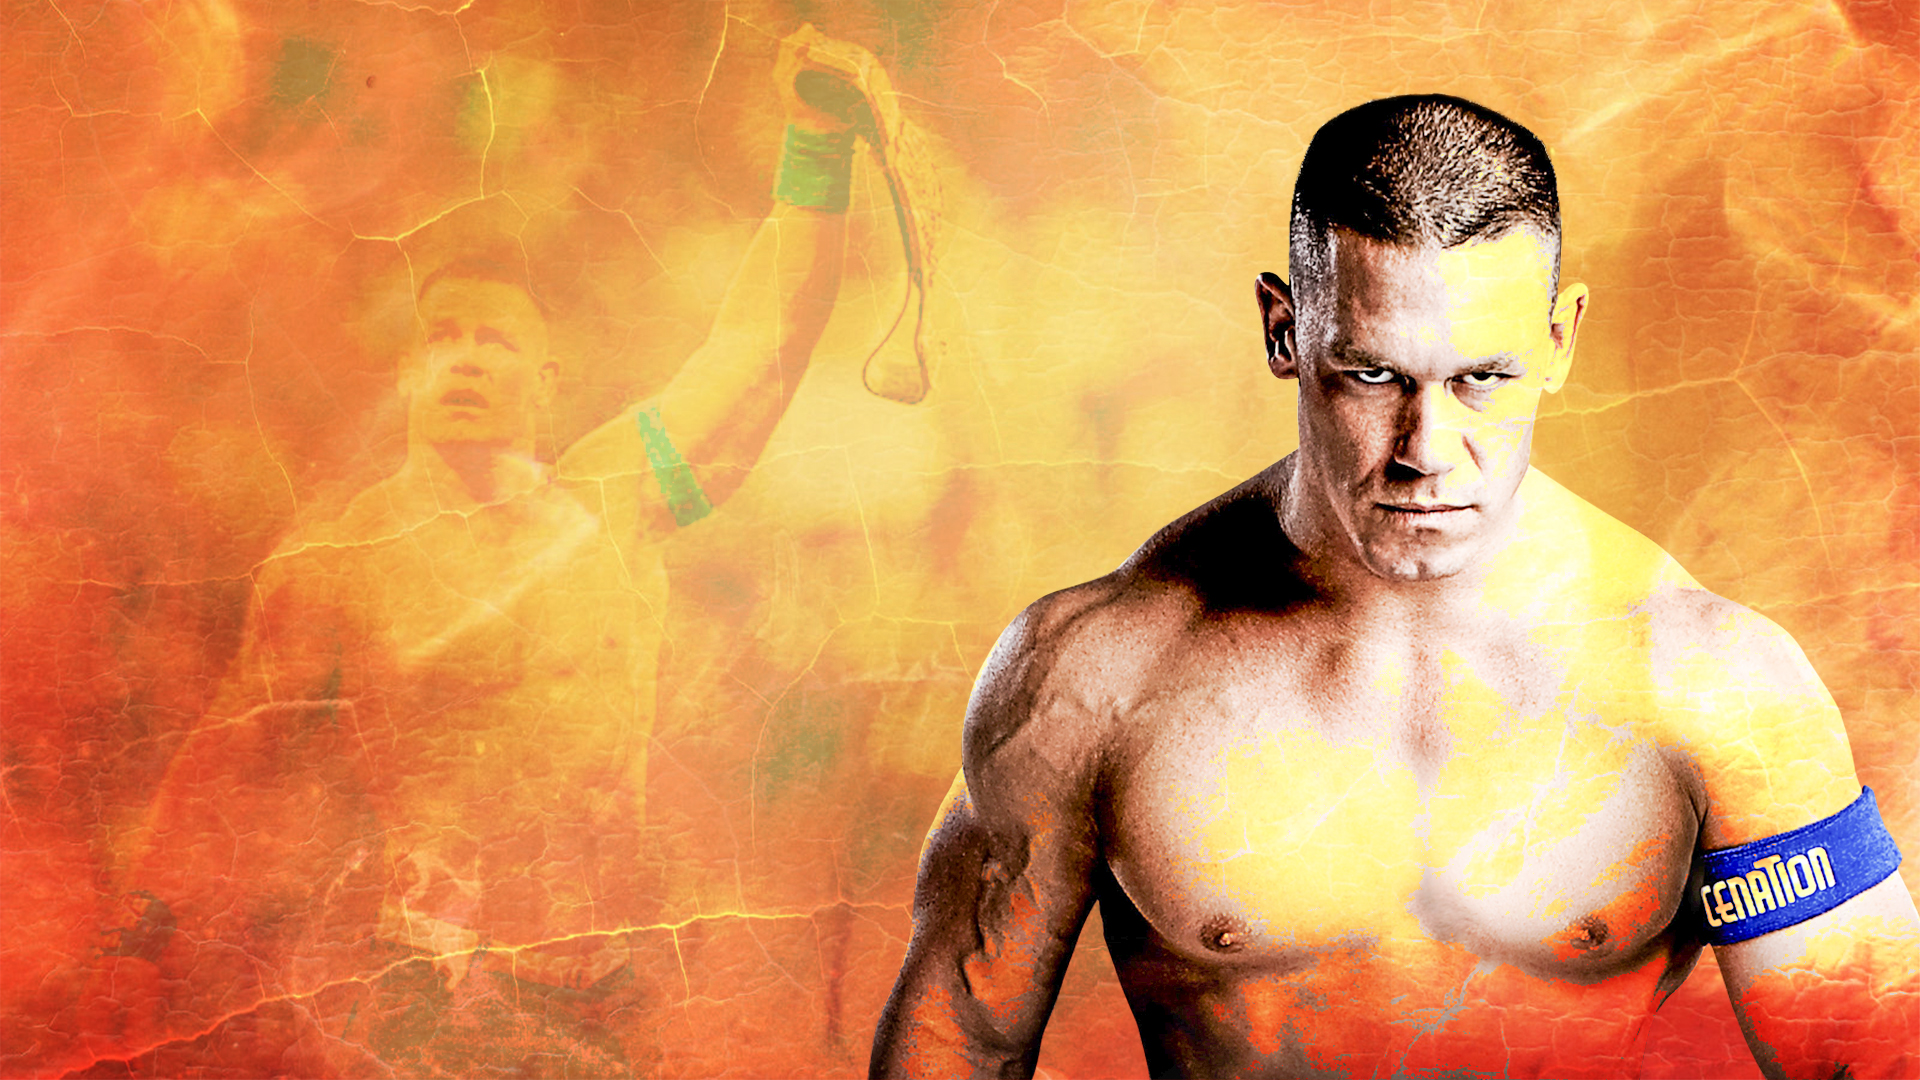 For Roman Reigns Wallpapers Click Here John Cena